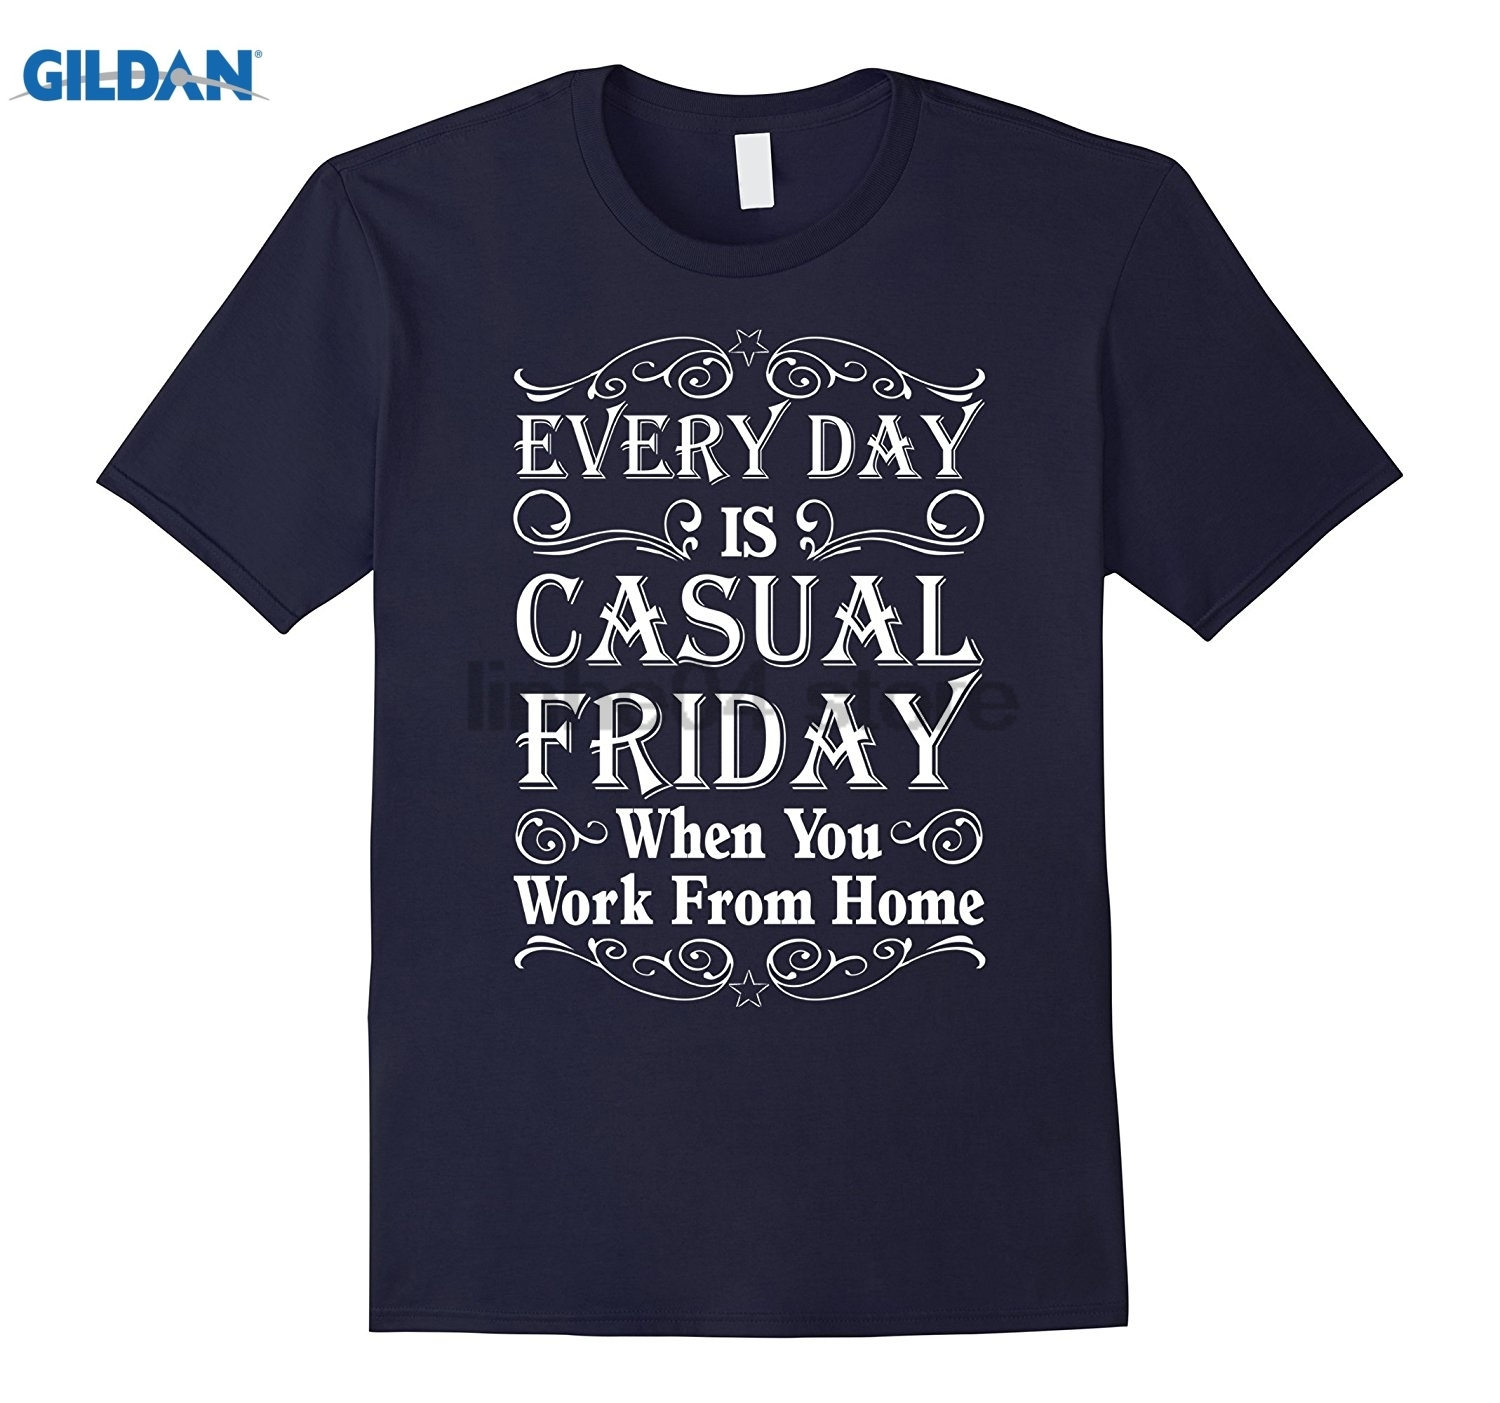 GILDAN Every Day Is Casual Friday When You Work From Home T-Shirt glasses Womens T-shirt